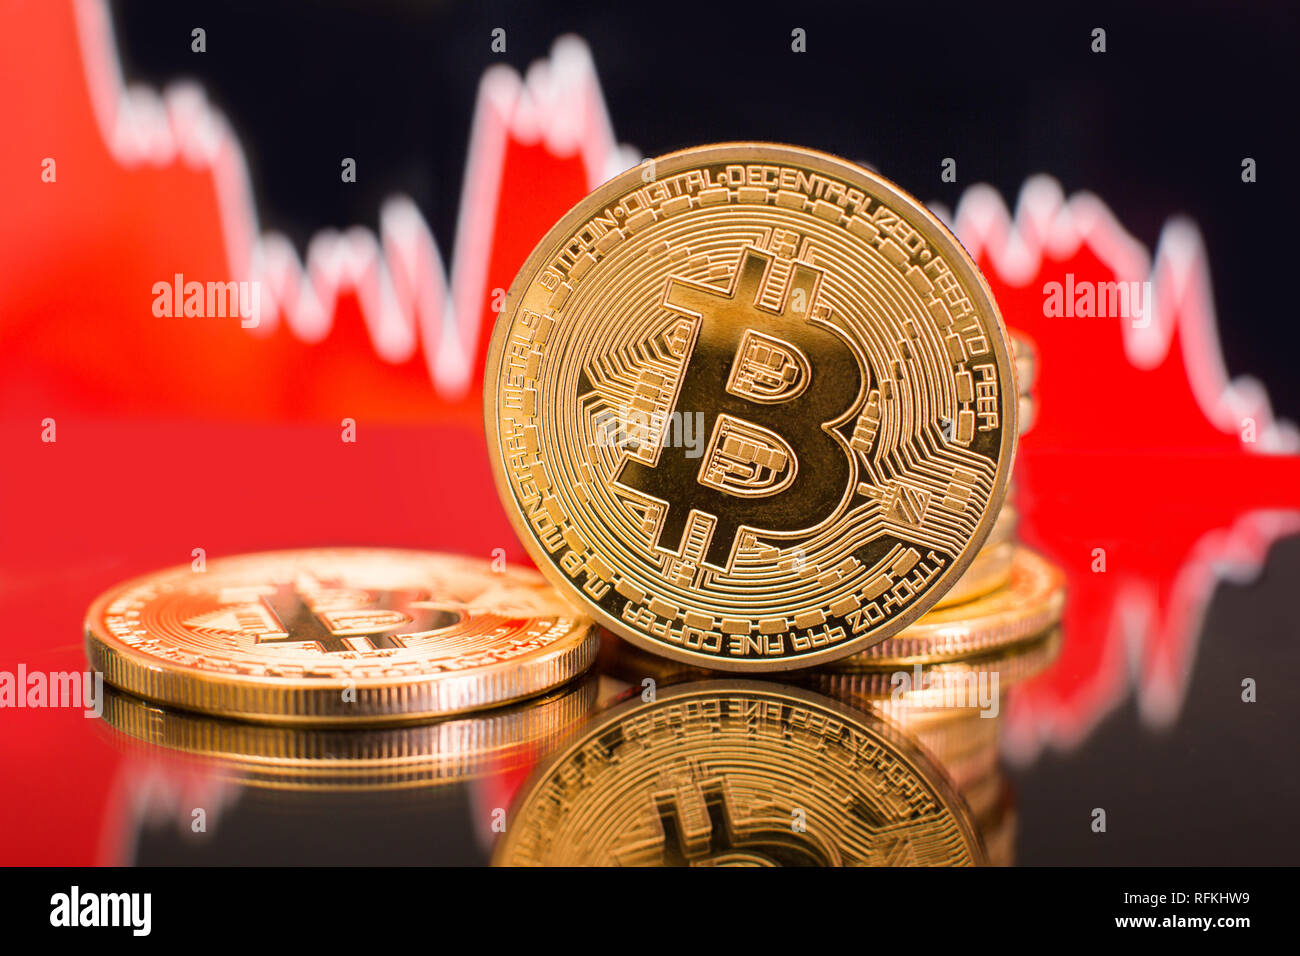 Bitcoin with a red chart drop. Price crash and bear market trend concept. - Stock Image